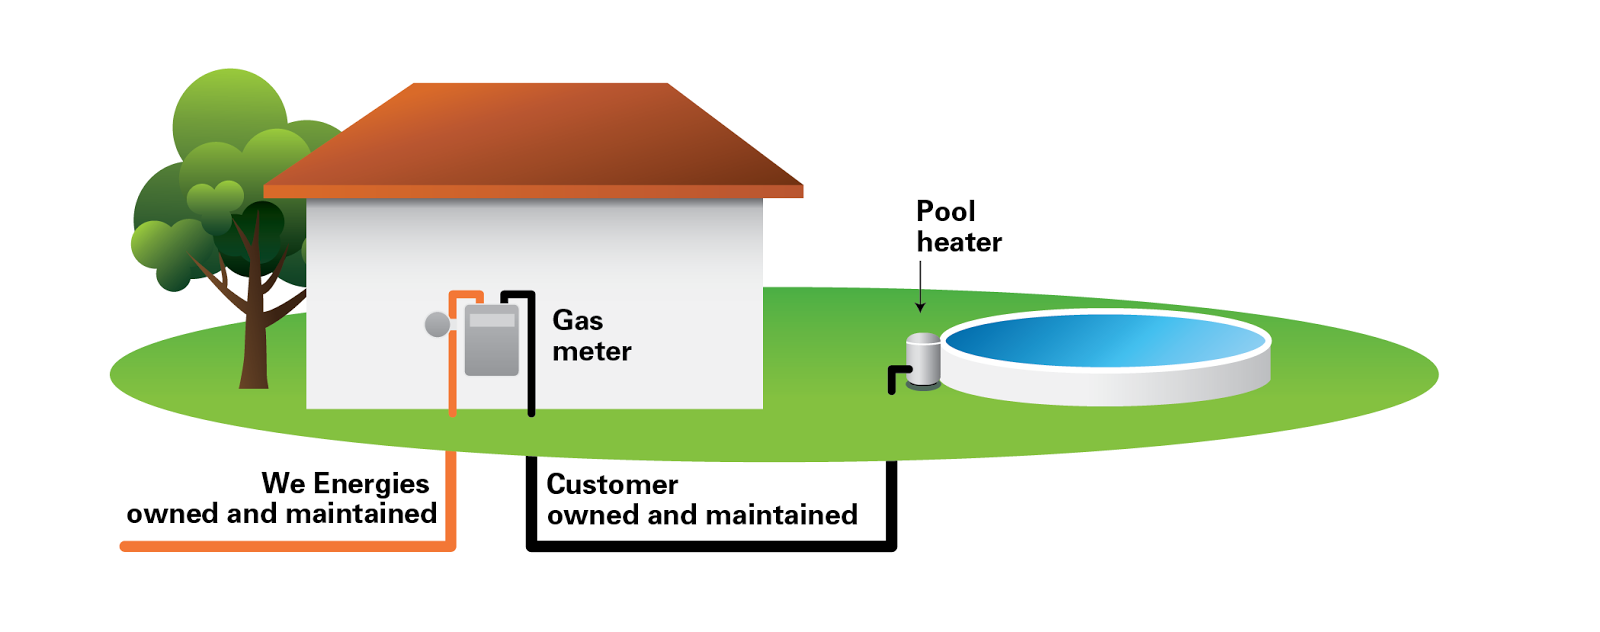 hight resolution of customers are responsible for natural gas lines running from the meter to equipment in and around their property a plumbing heating or locating contractor